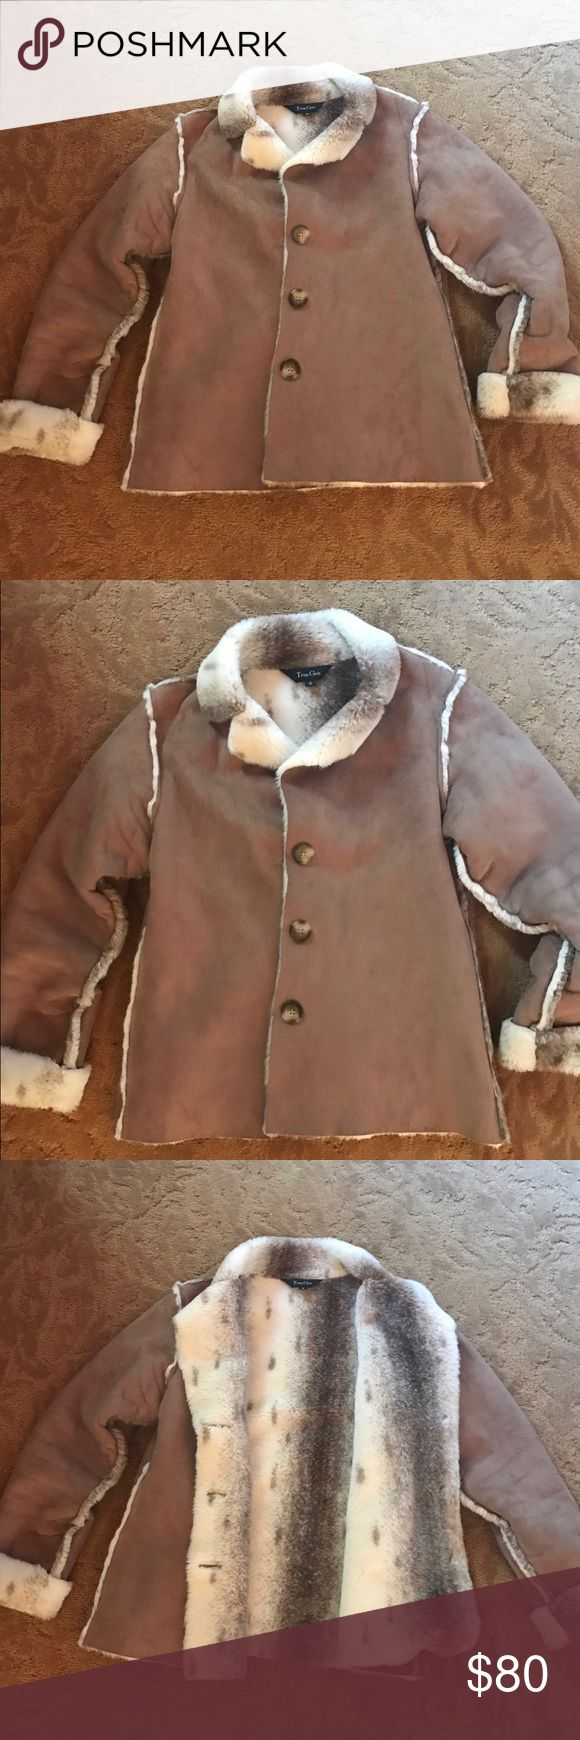 True Grit Brown Suede Jacket w Soft Fur Lining True Grit Brown Suede Jacket w Soft Fur Lining. Never been worn, excellent condition! Very soft and comfortable for the winter. Care Instructions: Machine wash cold; Delicate wash cycle; With like colors; Do not bleach; Tumble dry low; Do not iron fur. True Grit Jackets & Coats